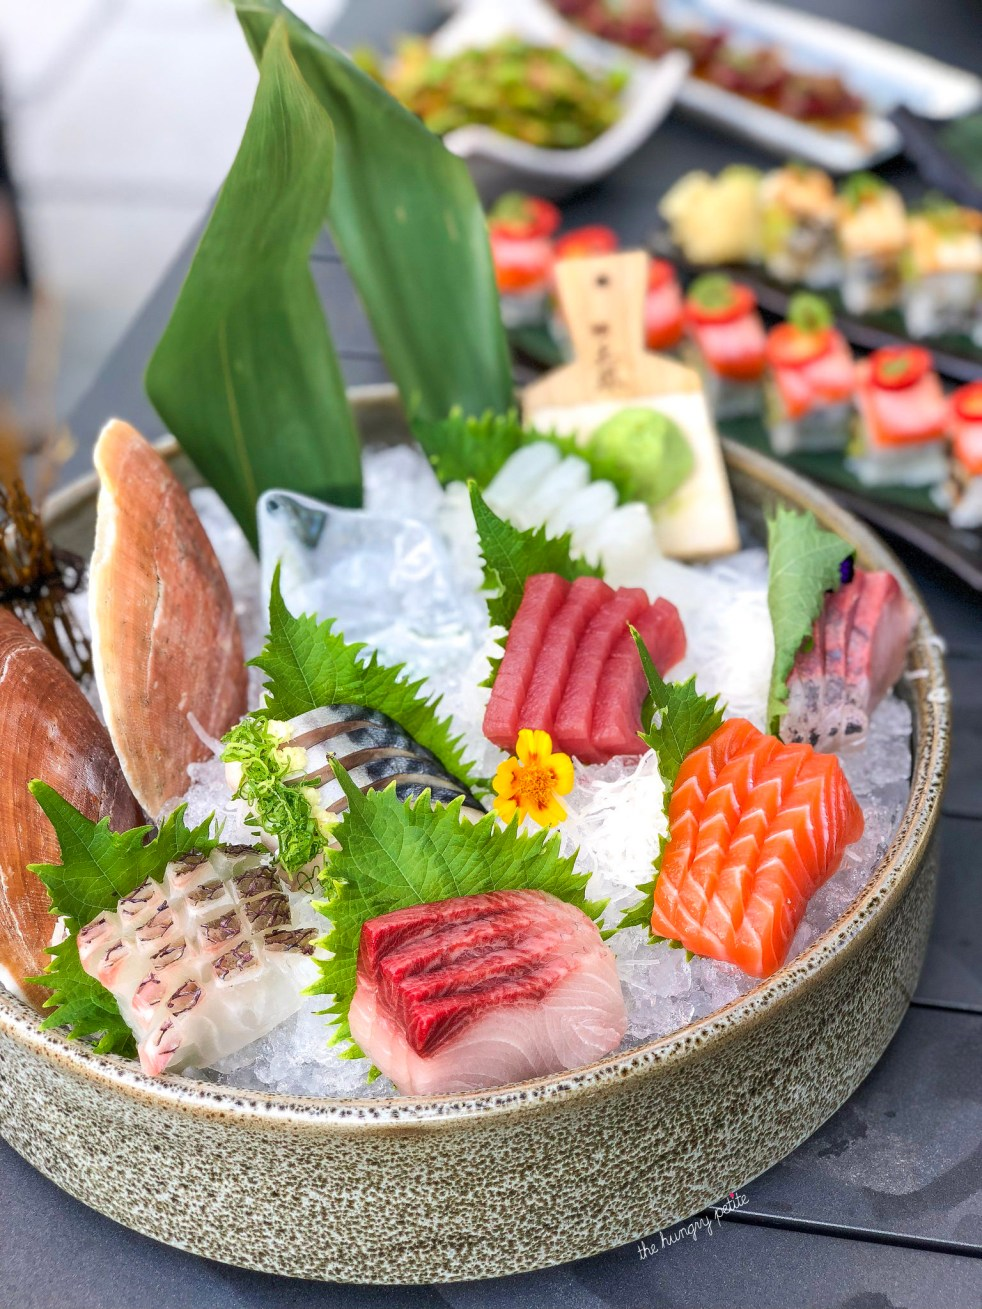 Sashimi Chef Selection included pieces of madai, Kingusa-Mon, and Mebachi Maguro